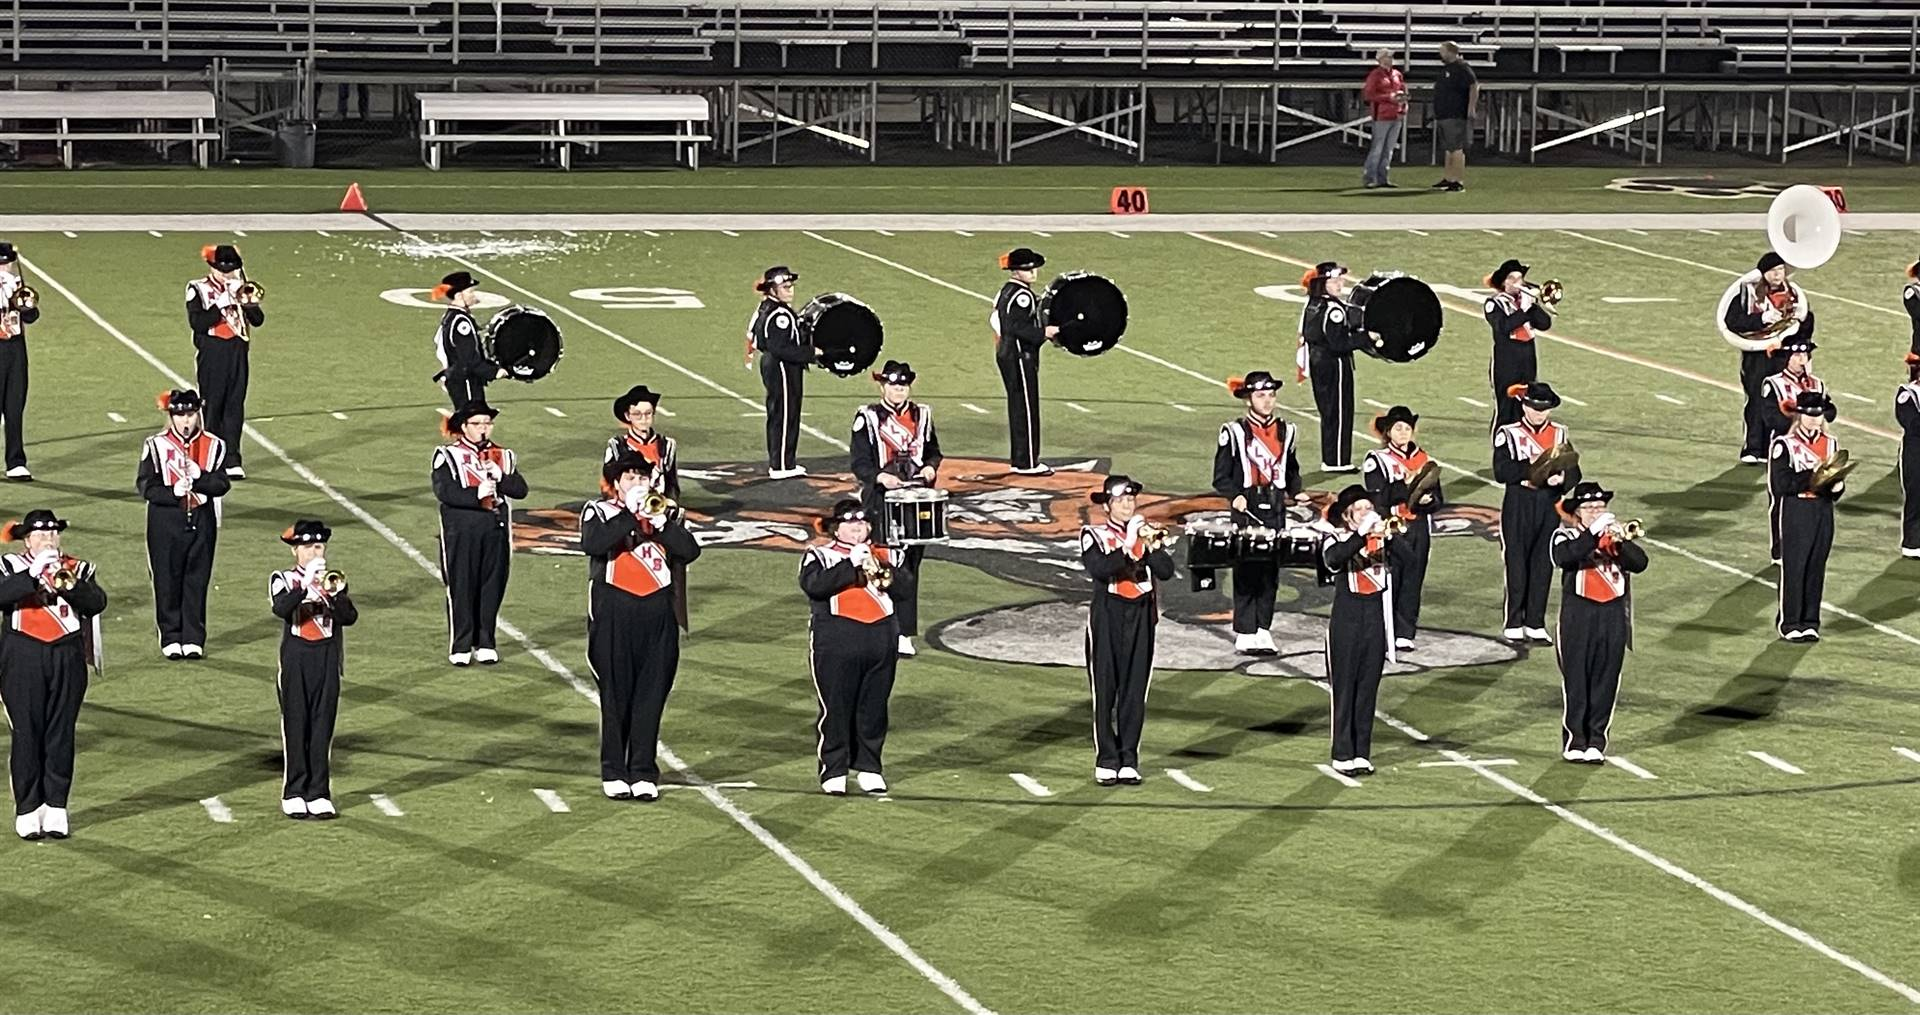 Marching Band Performing at the Coshocton Game